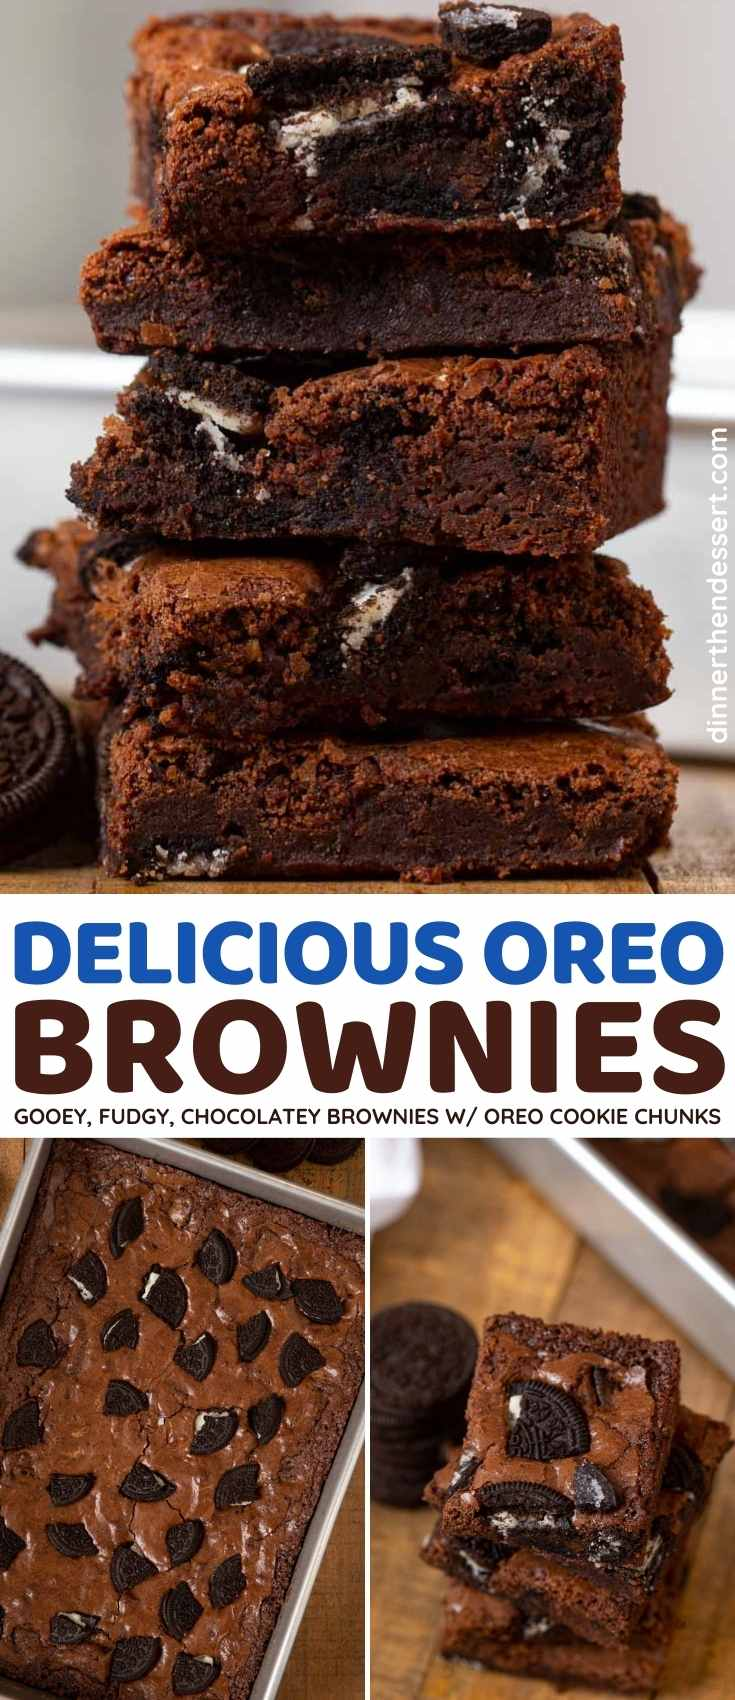 Oreo Brownies collage